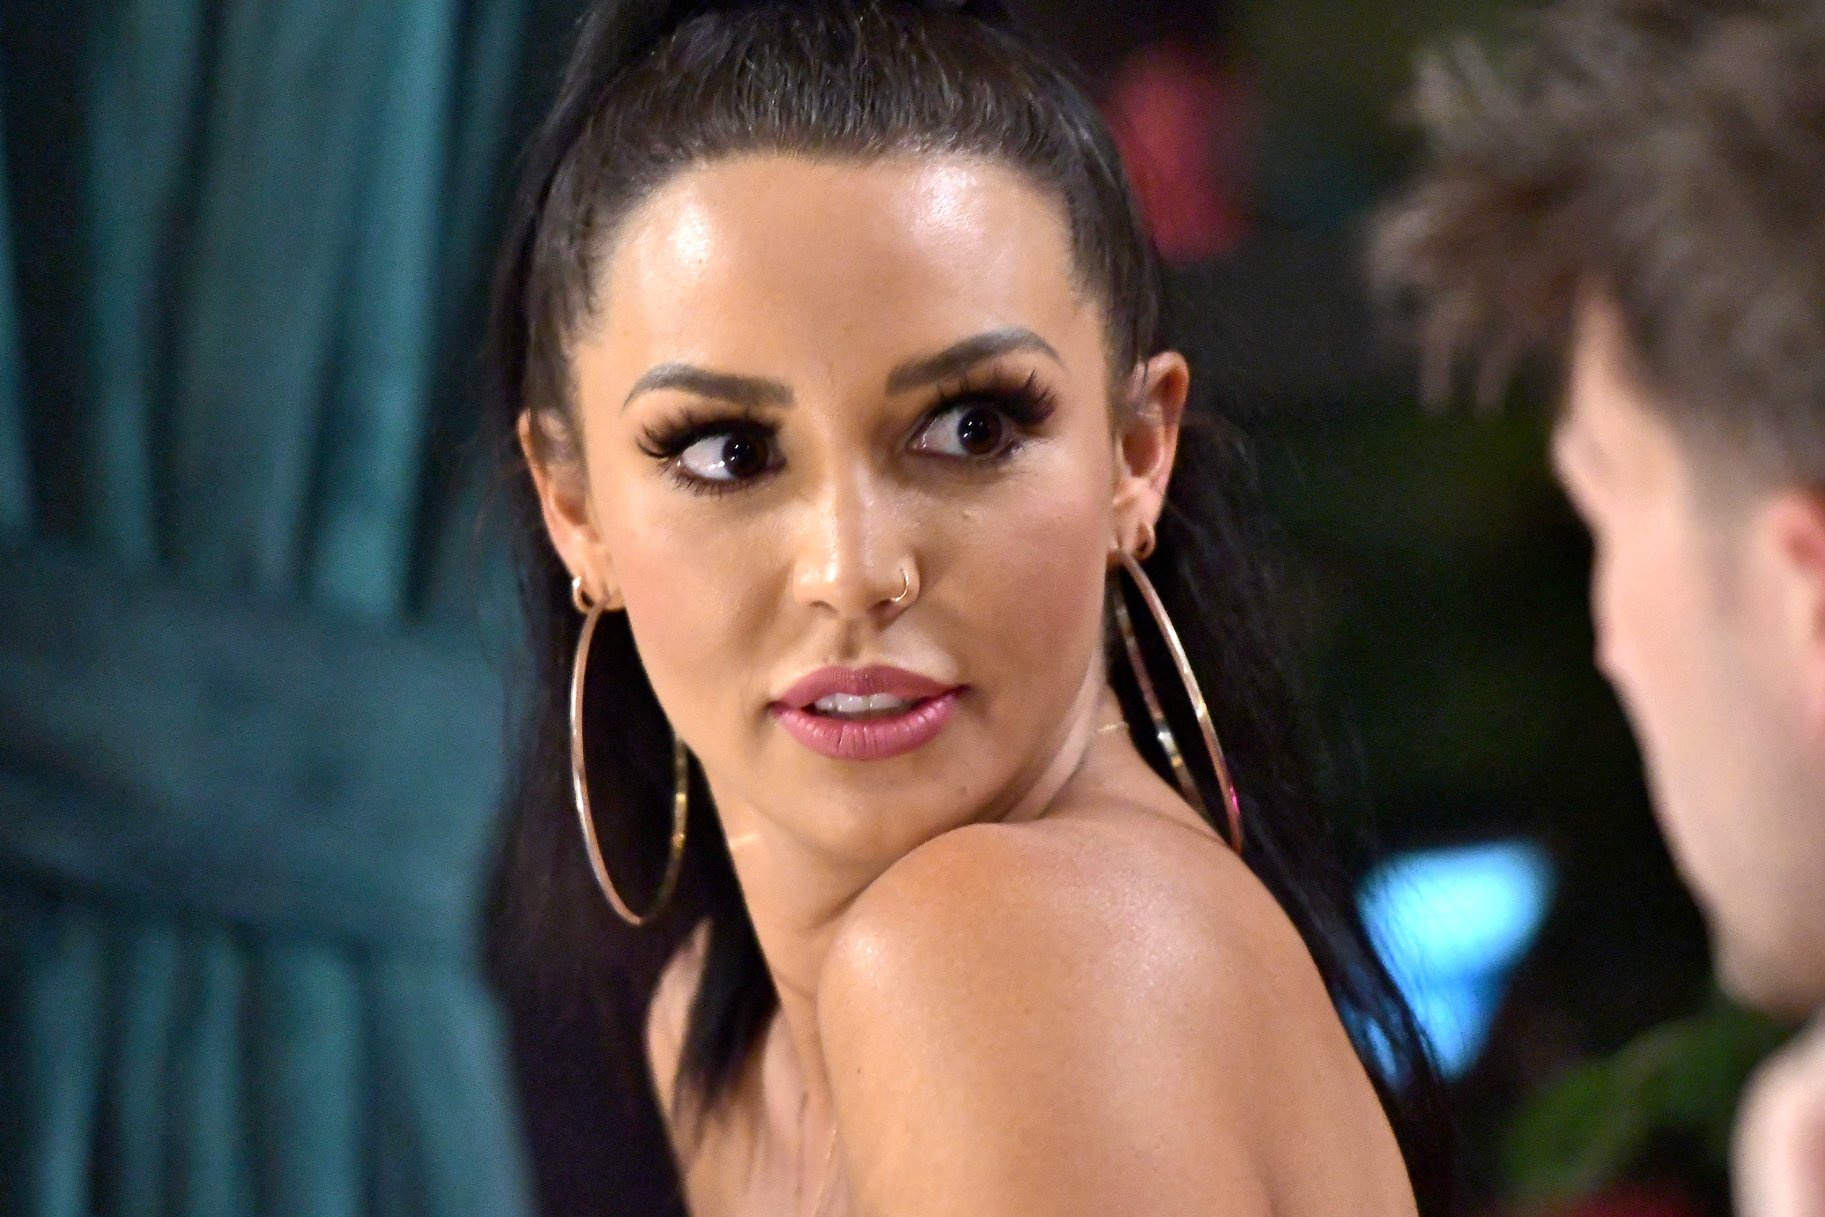 Scheana Shay Goes Too Far With The Self-Tanner? – Claps Back At People Accusing Her Of 'Blackfishing' In New Pic!